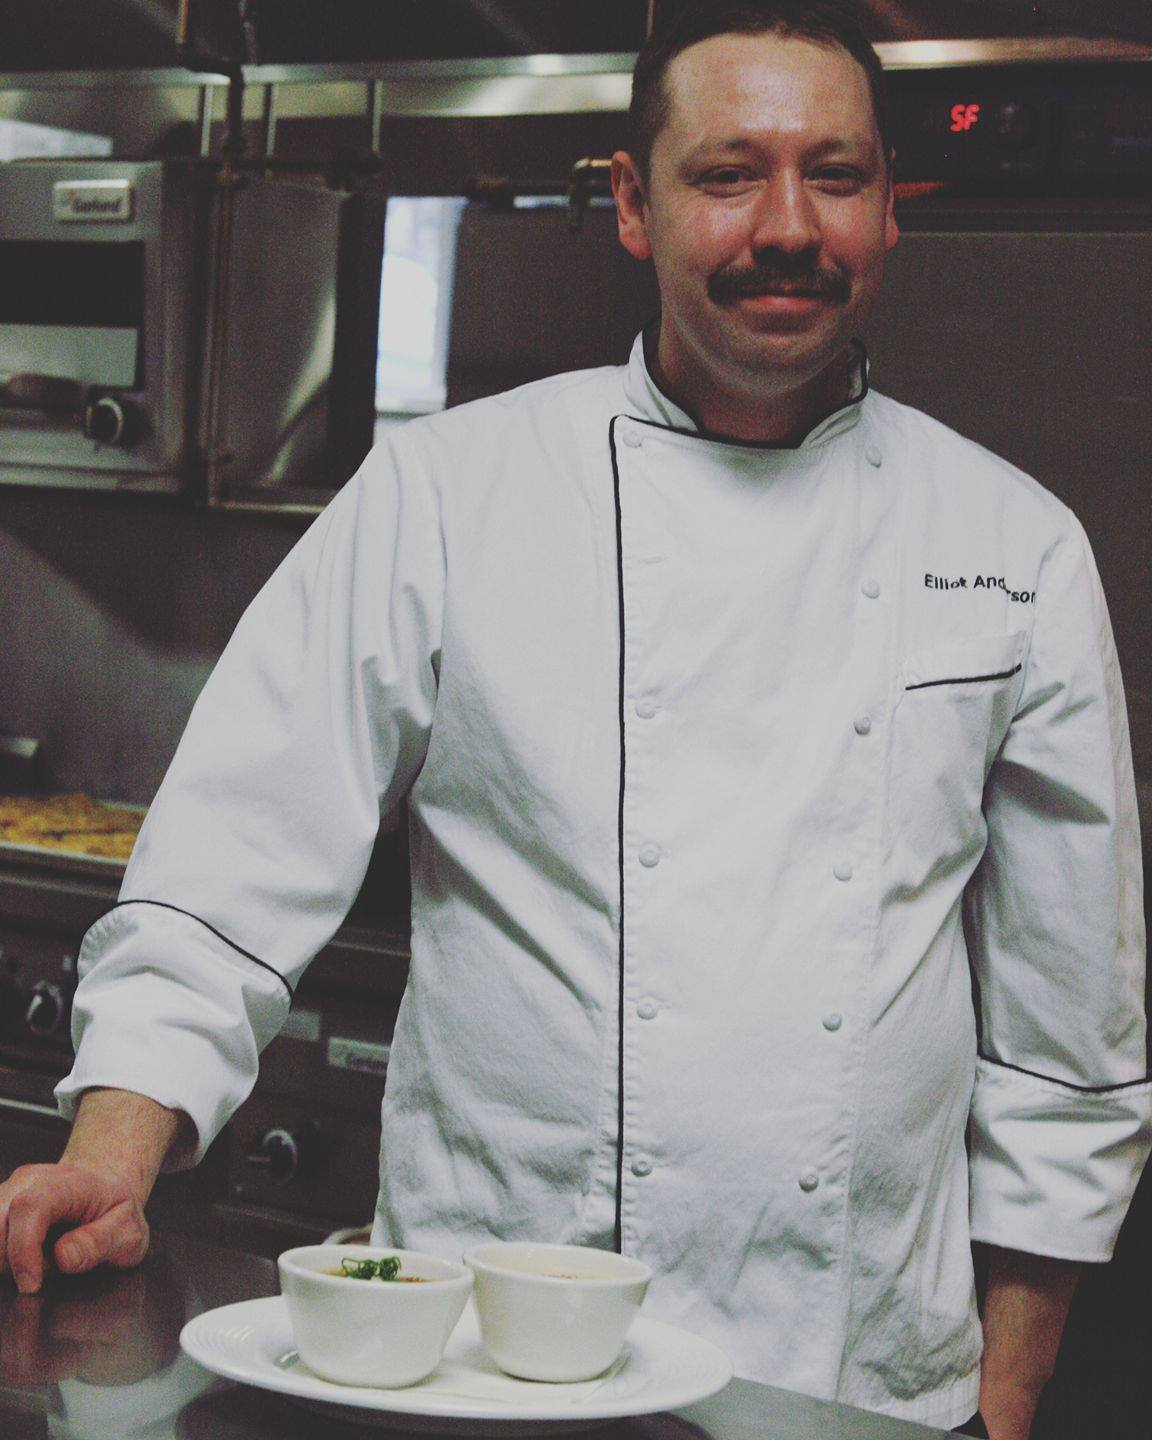 Chef Eliot Anderson of Coltivare poses in the kitchen.